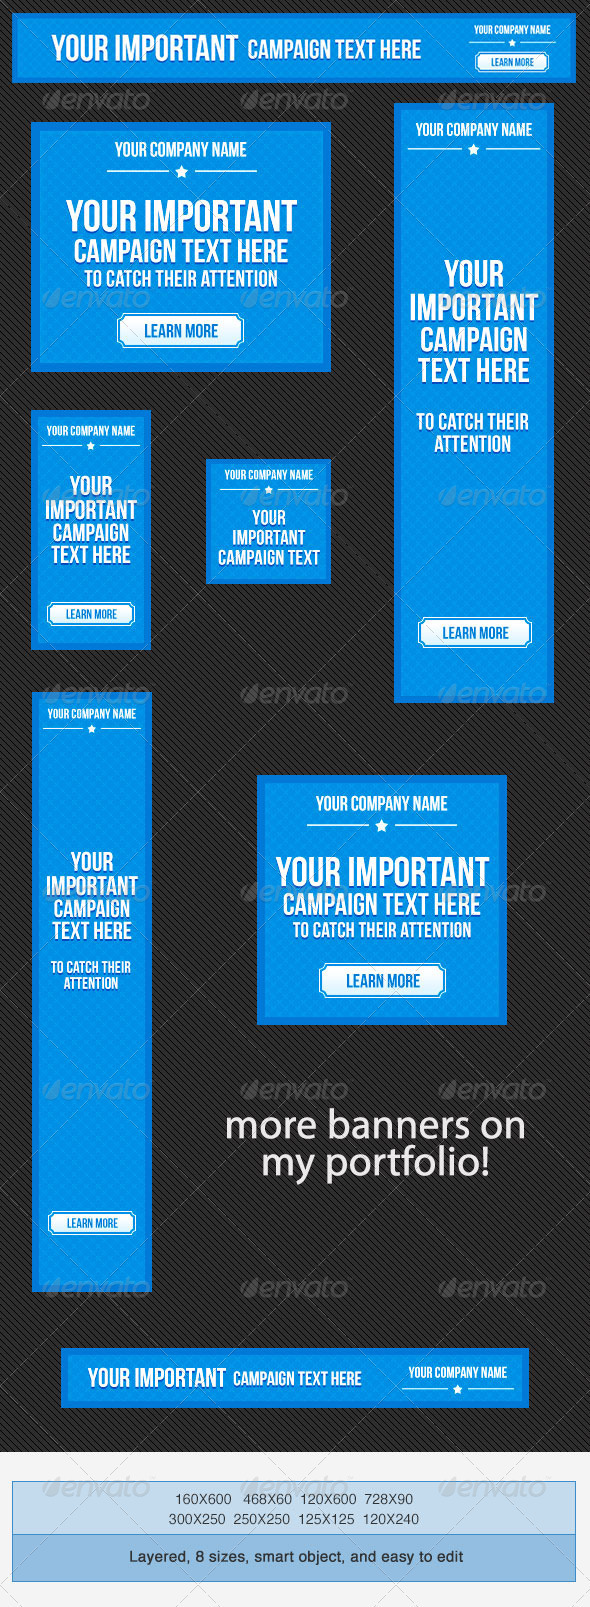 Web Marketing Banner Ad Templates By Admiraladictus GraphicRiver - Photoshop ad templates